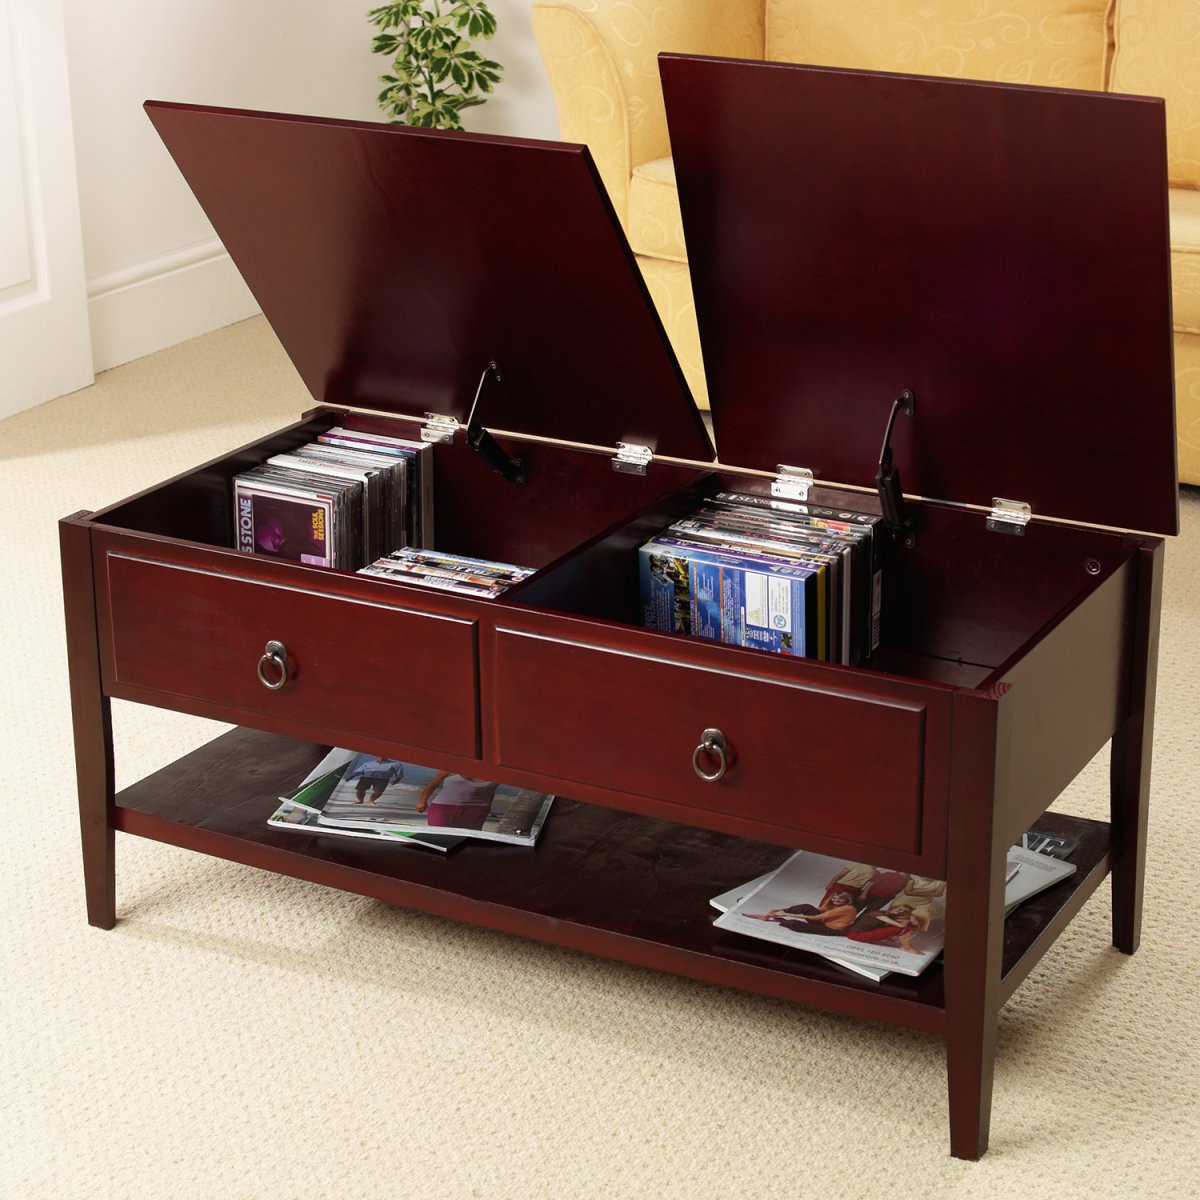 Best ideas about Coffee Tables With Storage . Save or Pin Do not go gently into that night rage rage against your Now.